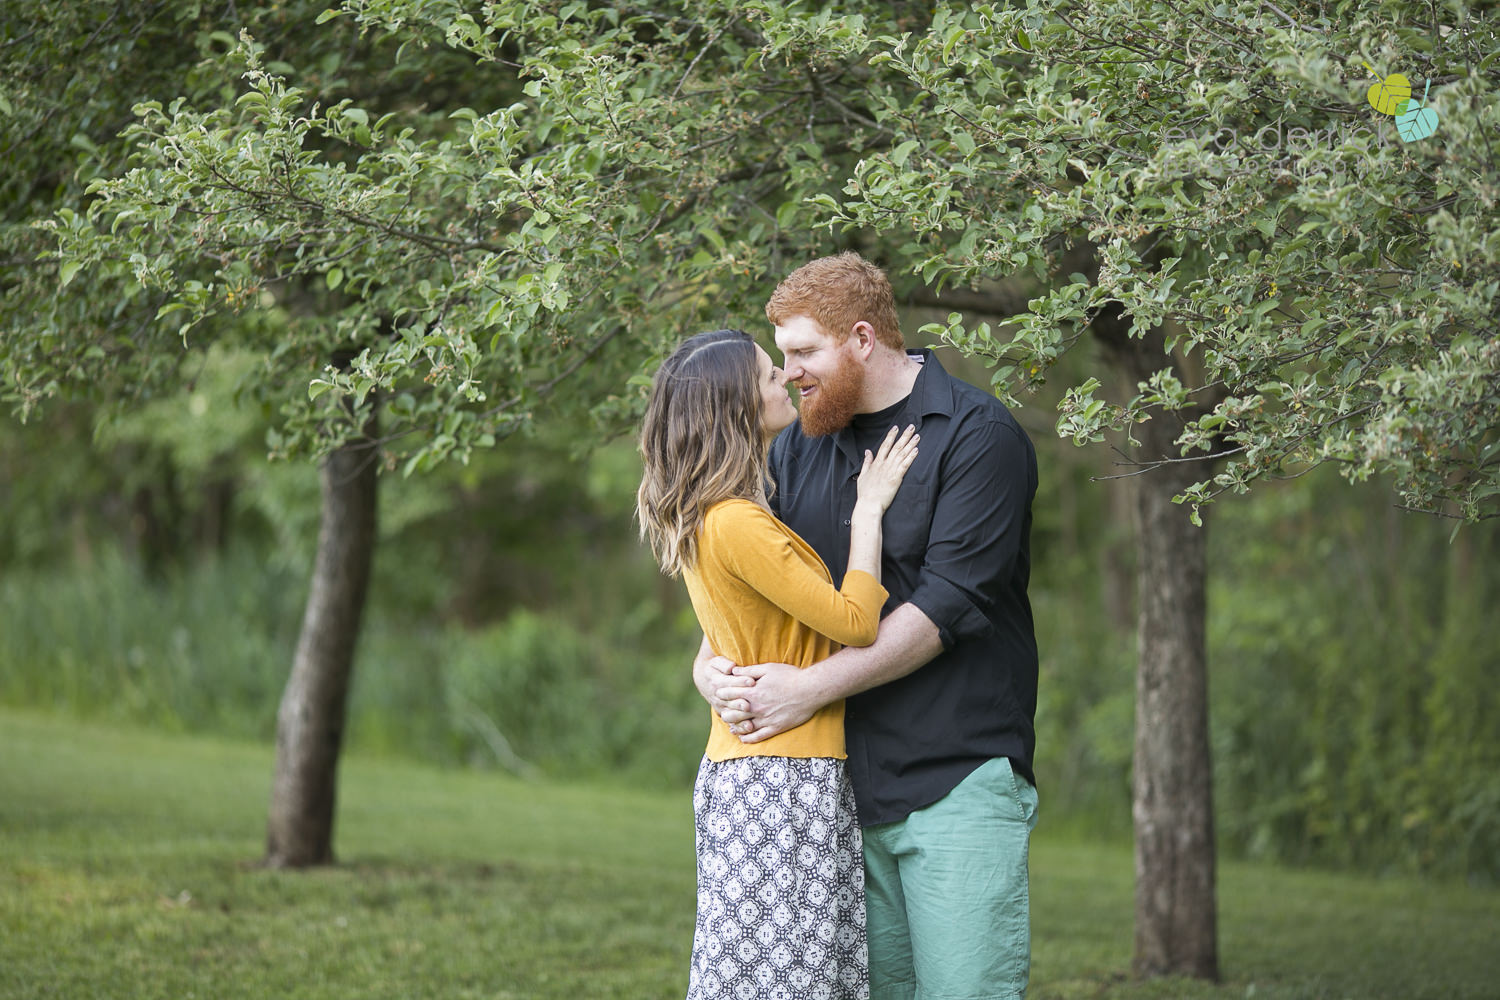 Millgrove-Photographer-Millgrove-Engagement-Session-photography-by-Eva-Derrick-Photography-005.JPG